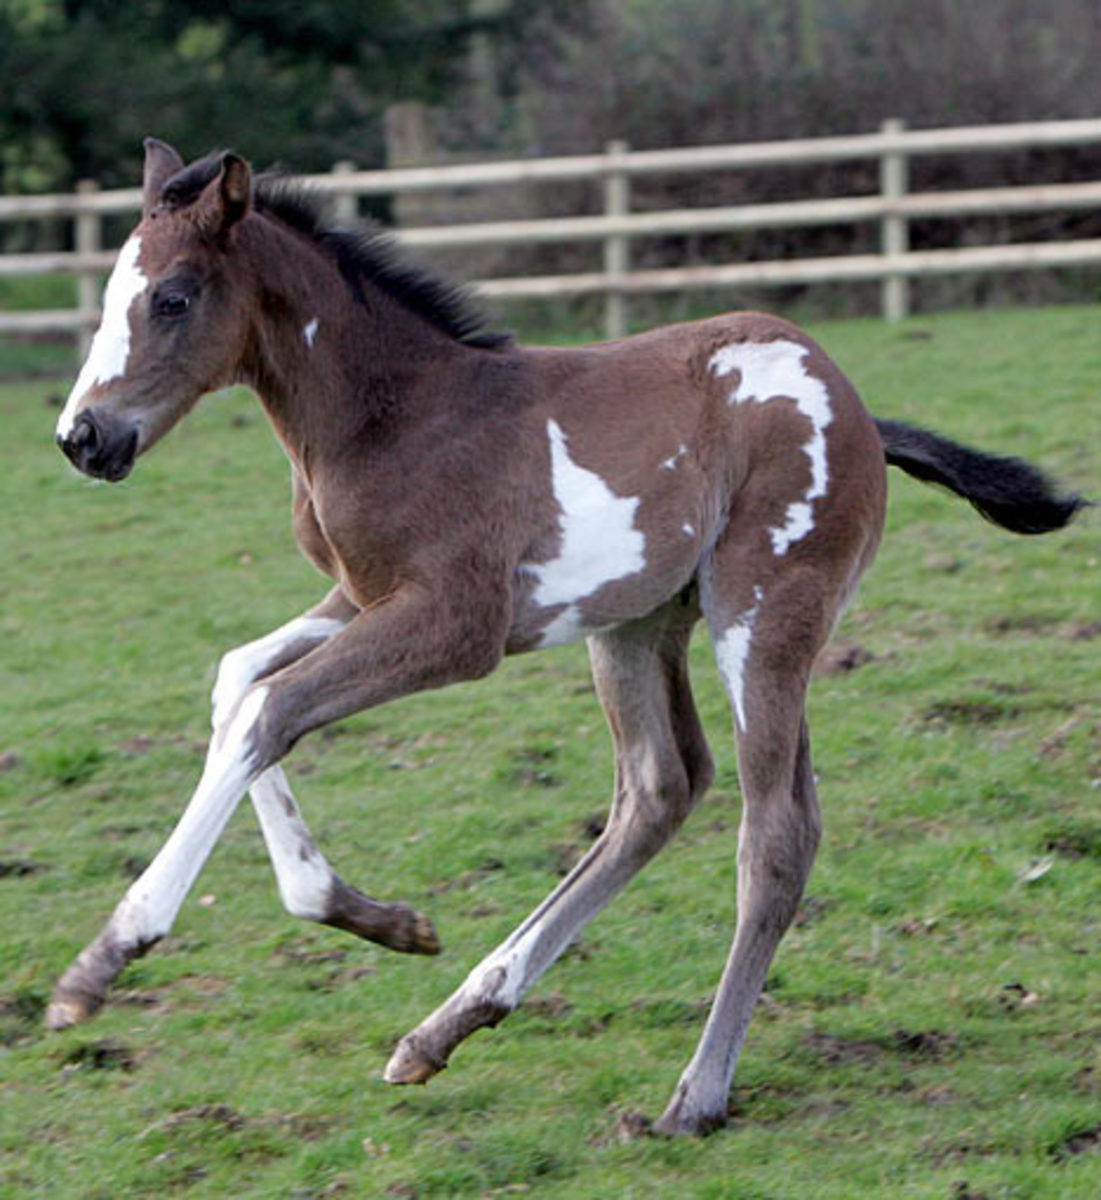 Brown and white foal.